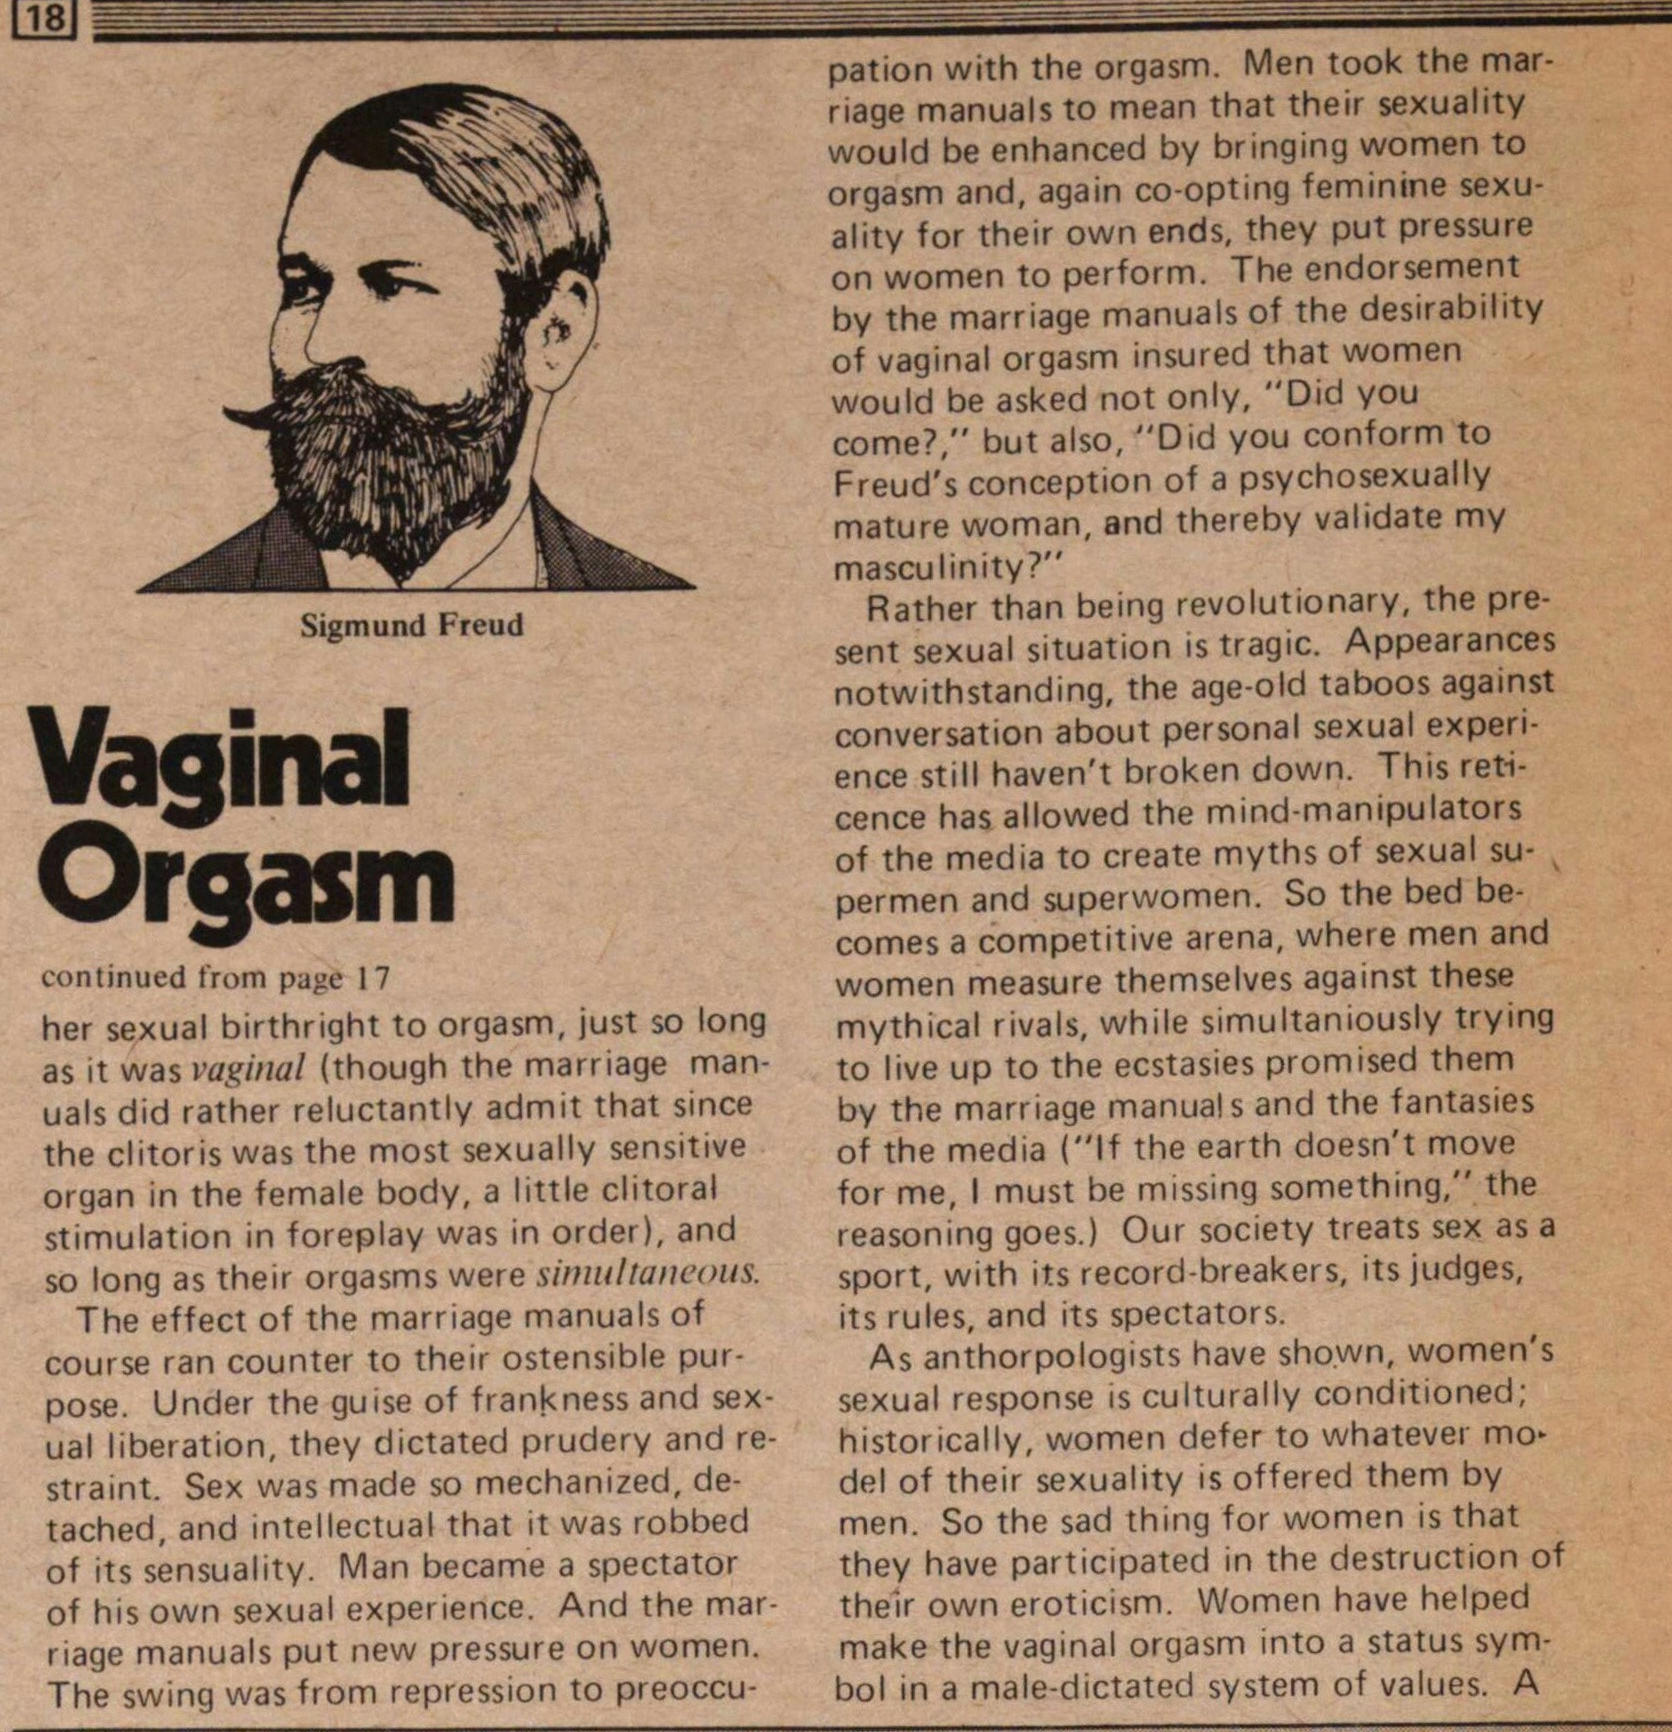 The Myth Of The Vaginal Orgasm image